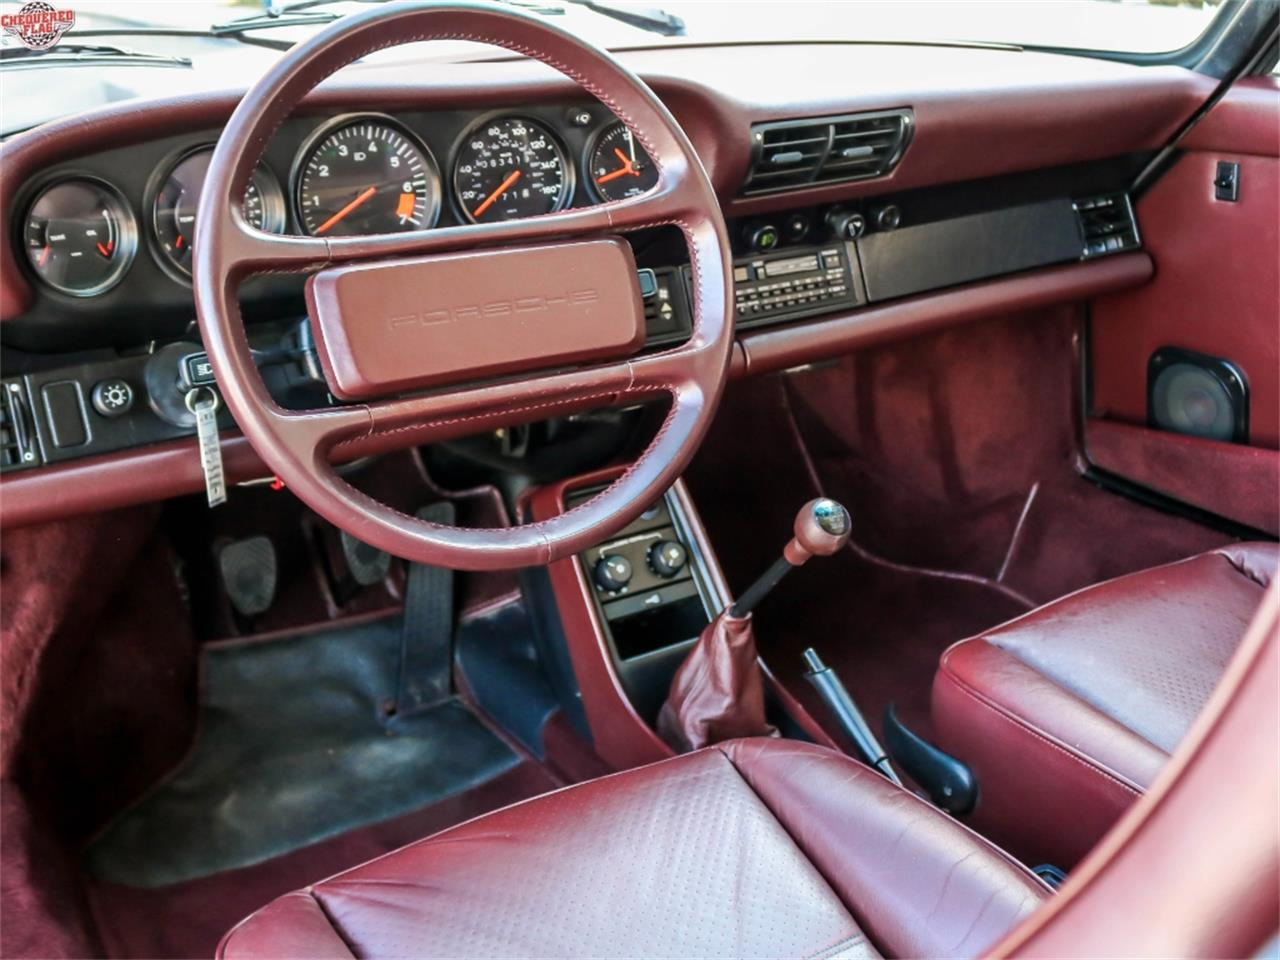 Large Picture of 1987 Porsche 911 located in Marina Del Rey California - $53,500.00 Offered by Chequered Flag International - M7SG